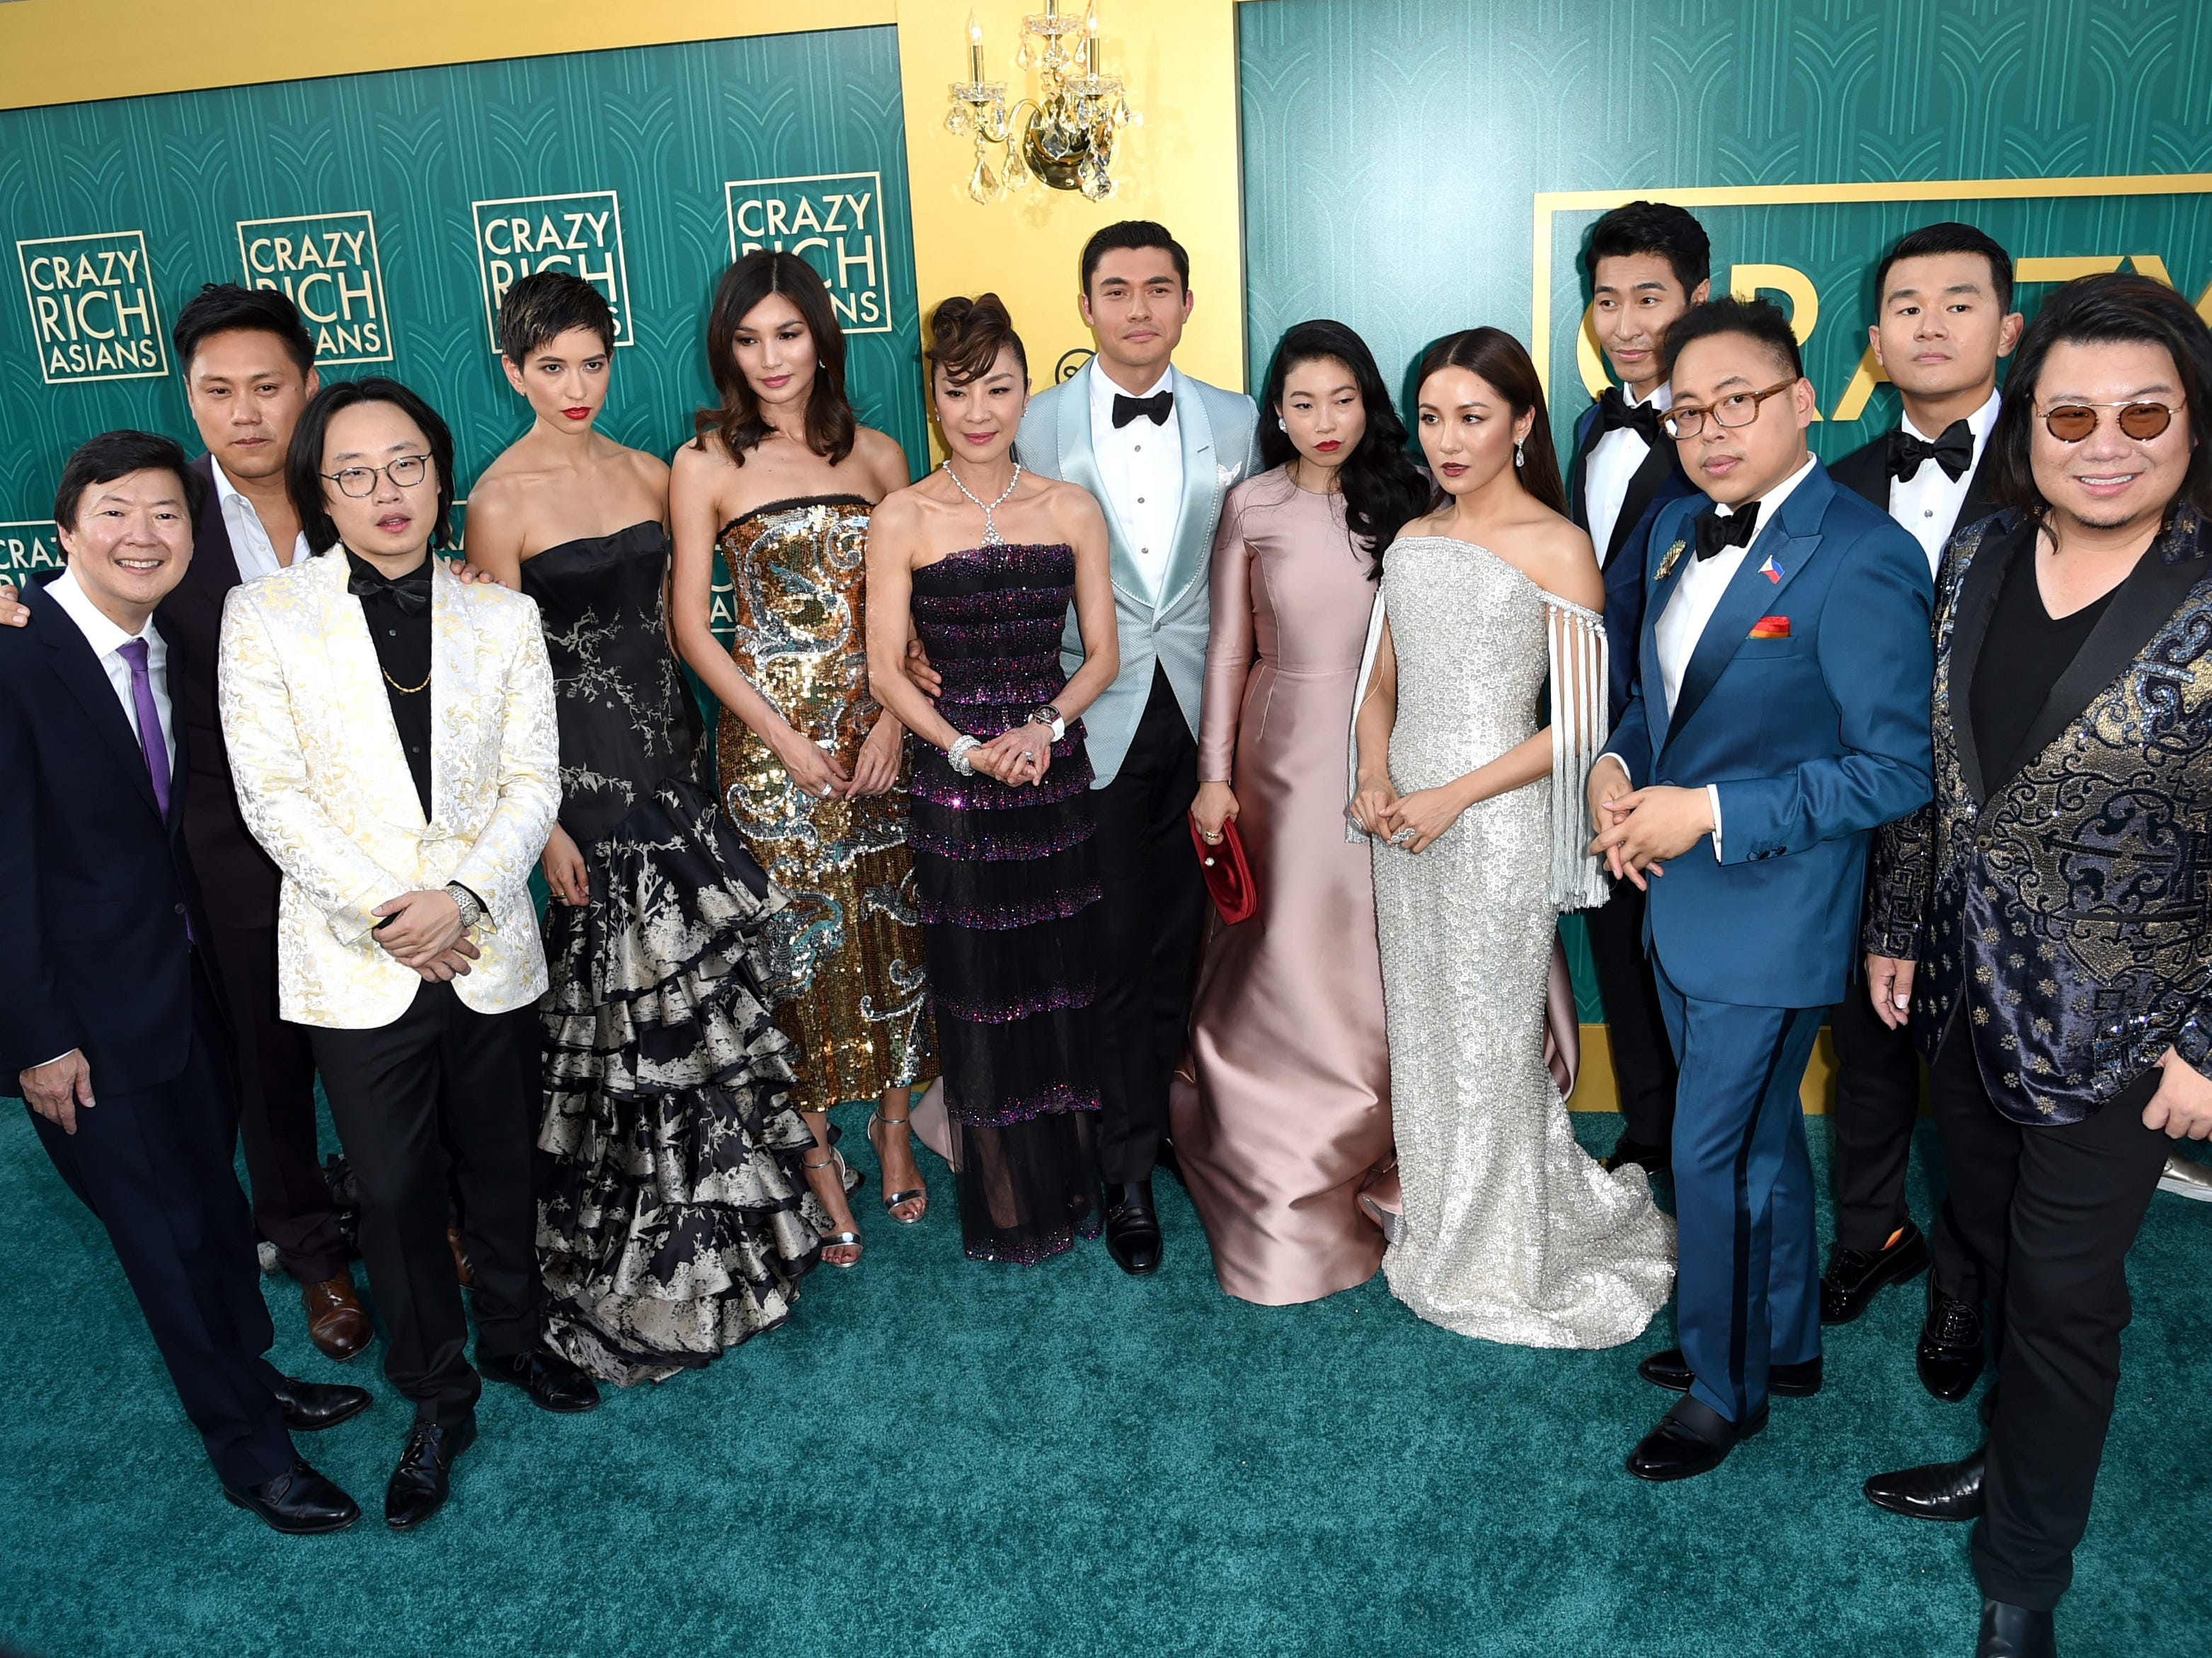 """August 7: The cast and crew of """"Crazy Rich Asians"""" pose together at the Los Angeles premiere."""